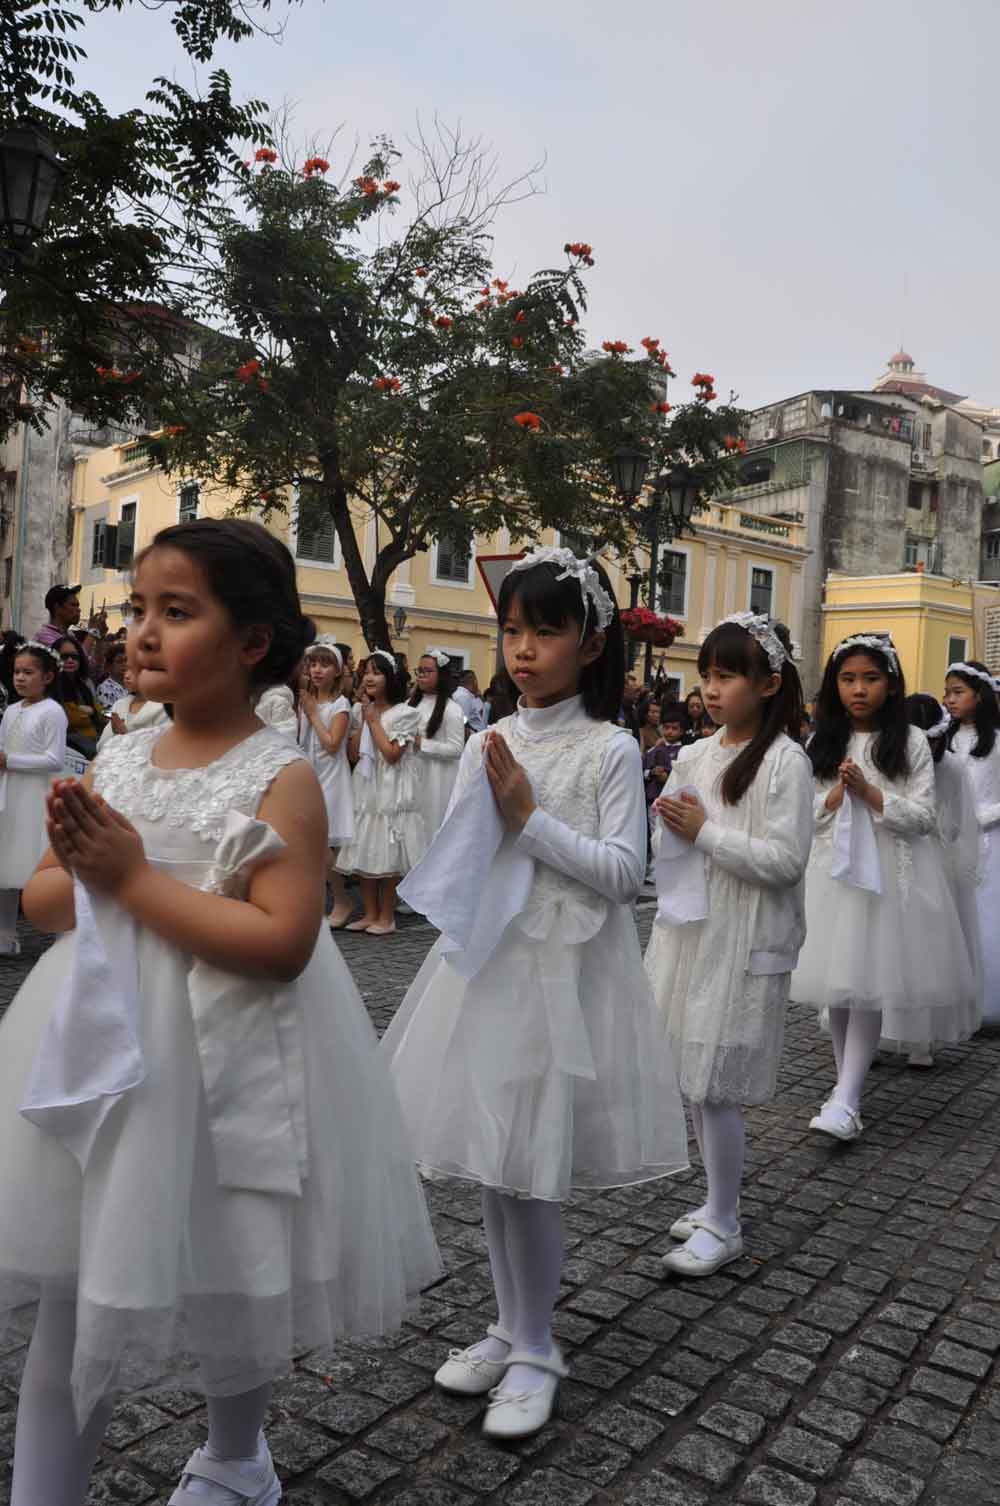 Passion of Our Lord Procession young girls in white dresses